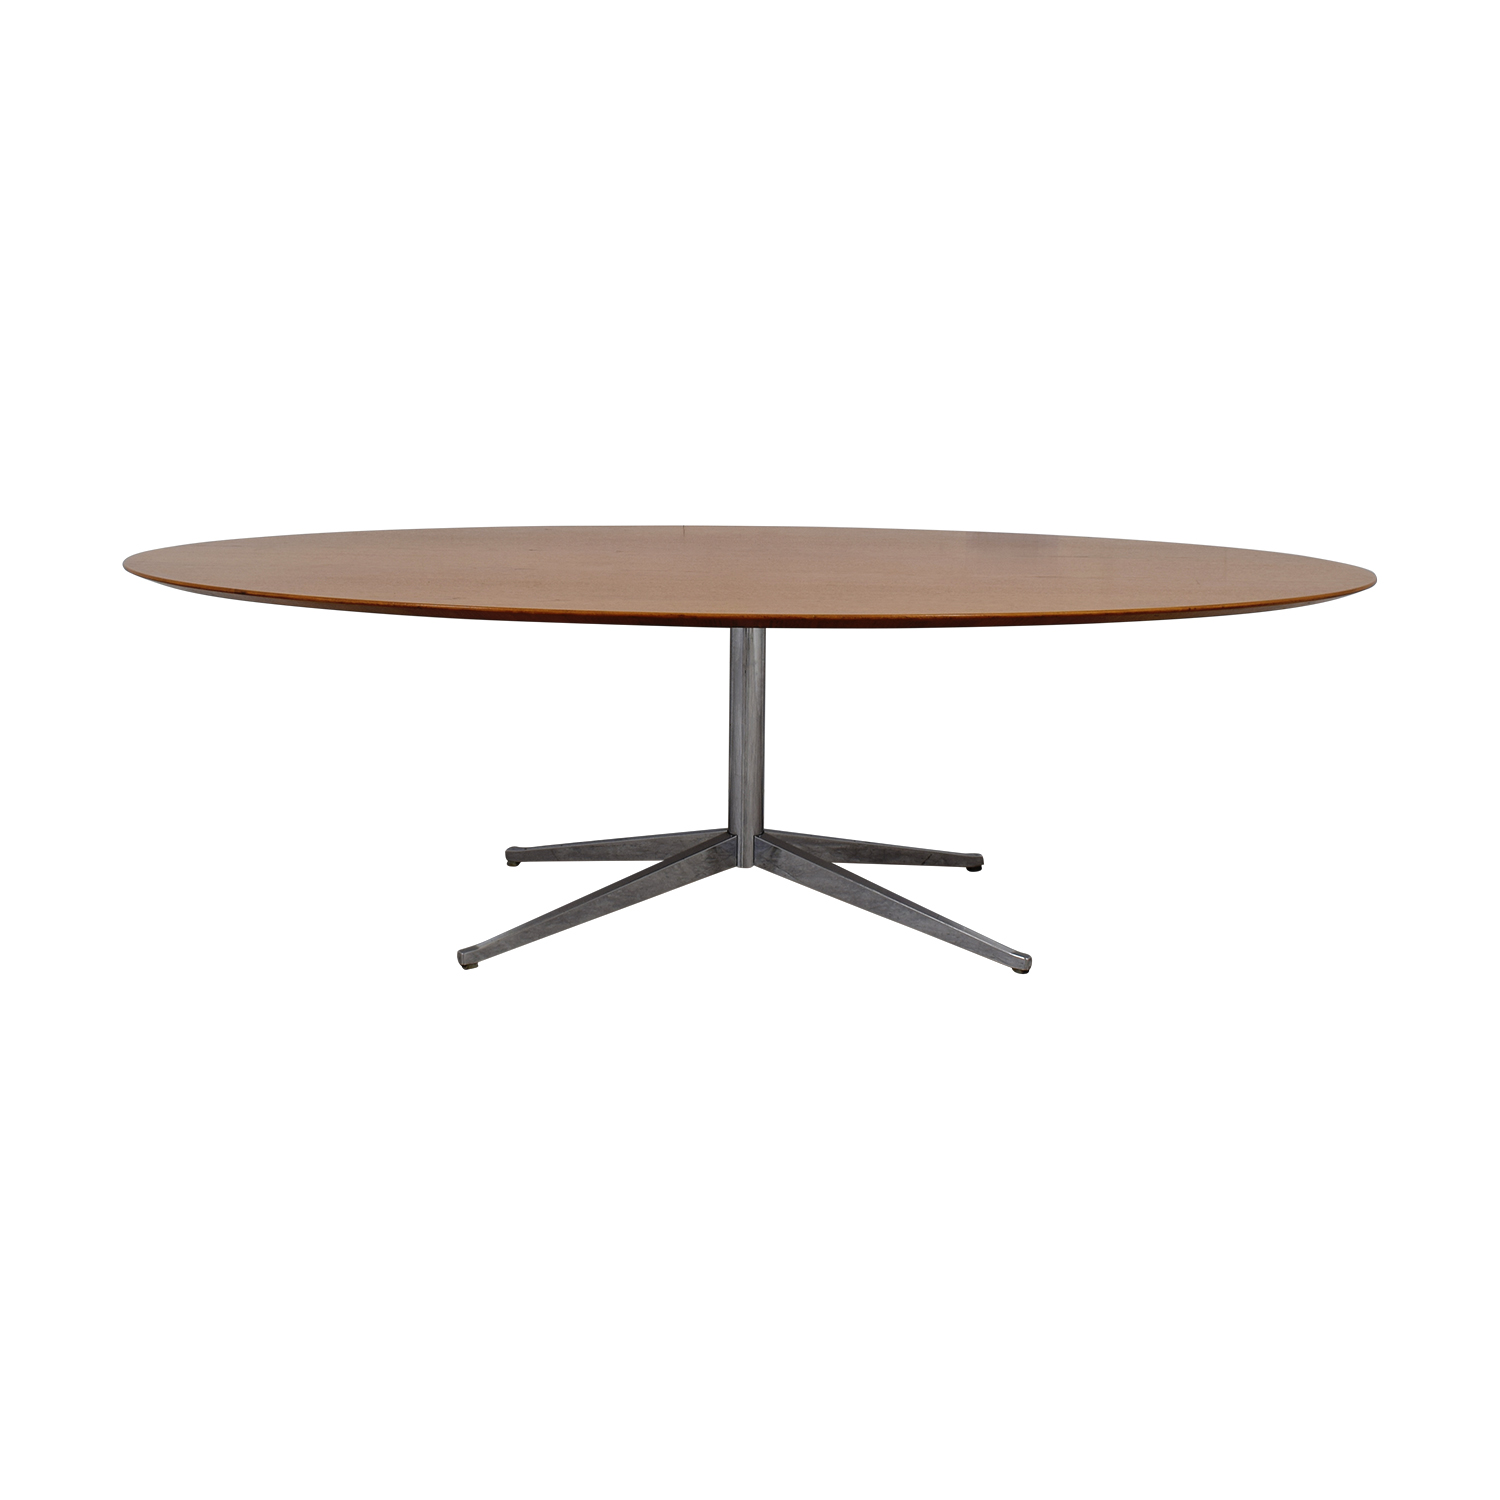 Knoll Table 86 Off Knoll Knoll Florence Oval Dining Table Tables